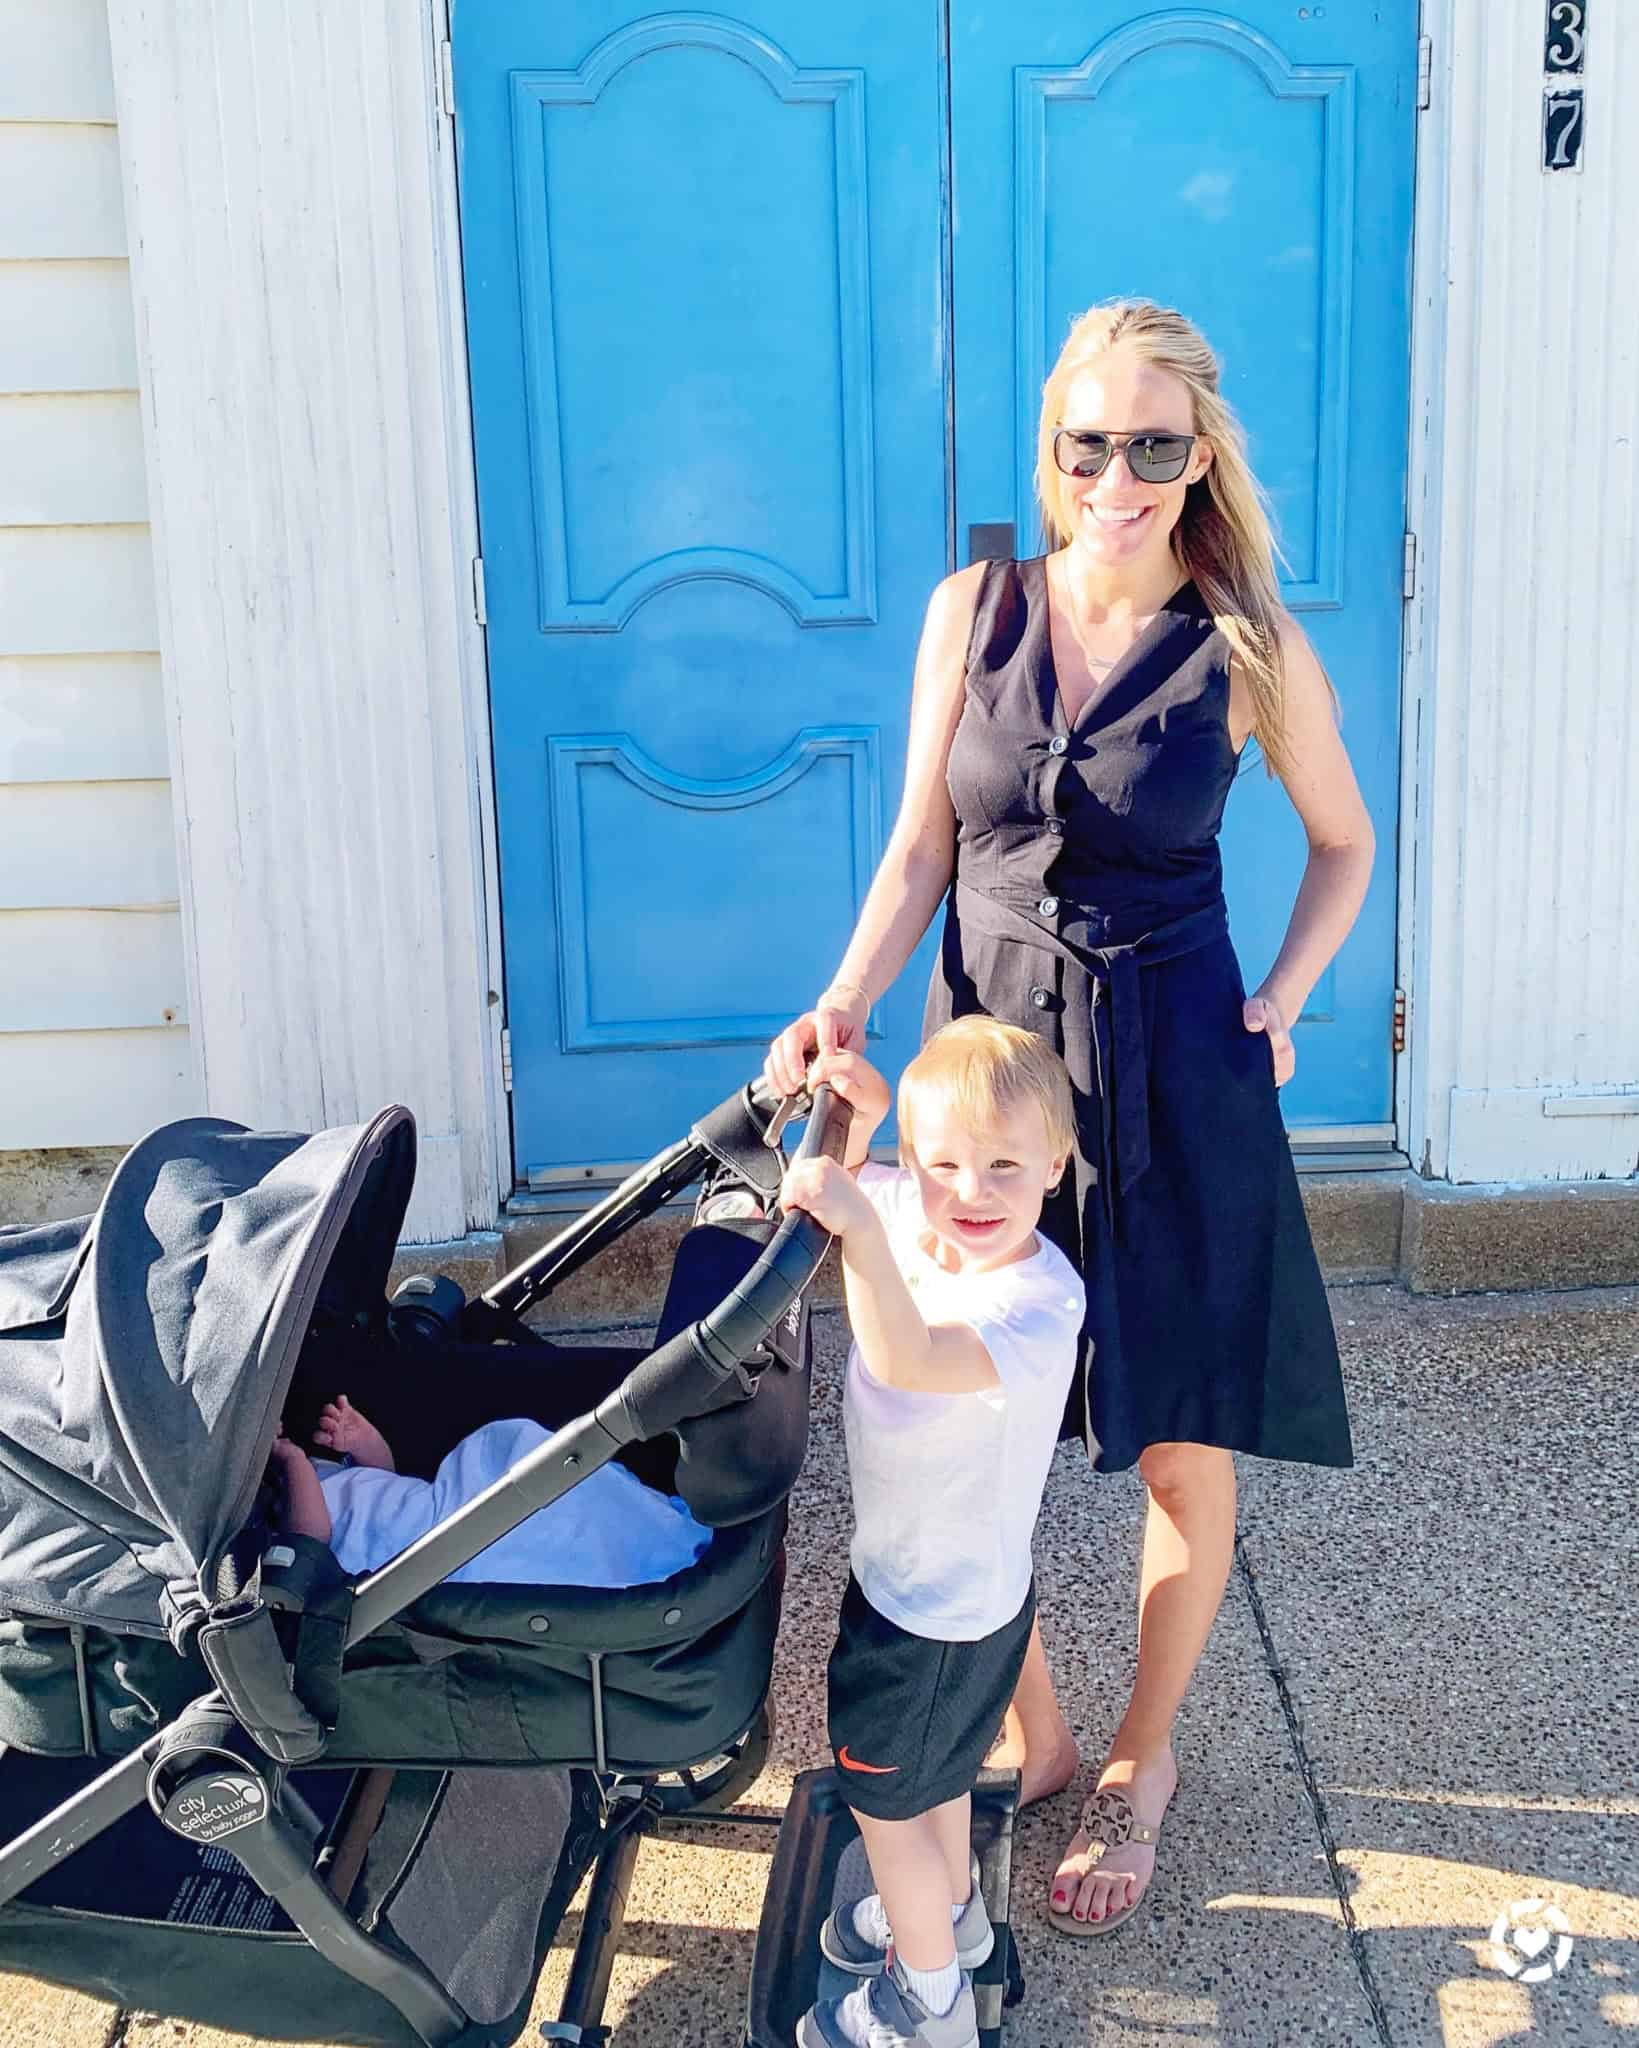 Top Michigan lifestyle blog, House of Navy. shares their thoughts on Working Full Time After Two Kids